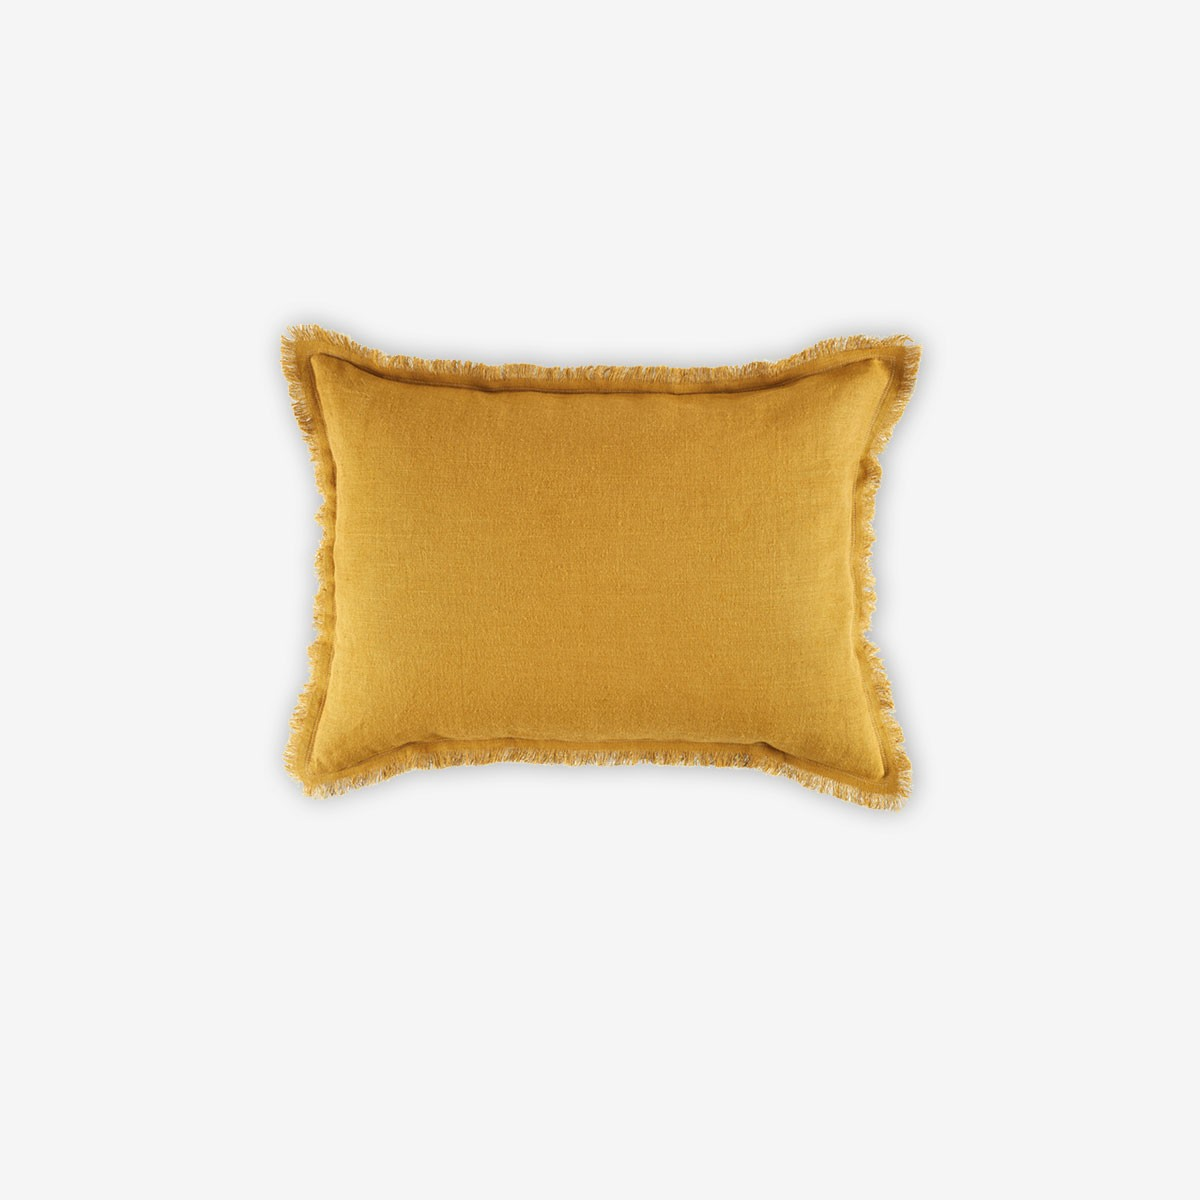 Image shows Karma Baby Cushion in Honey